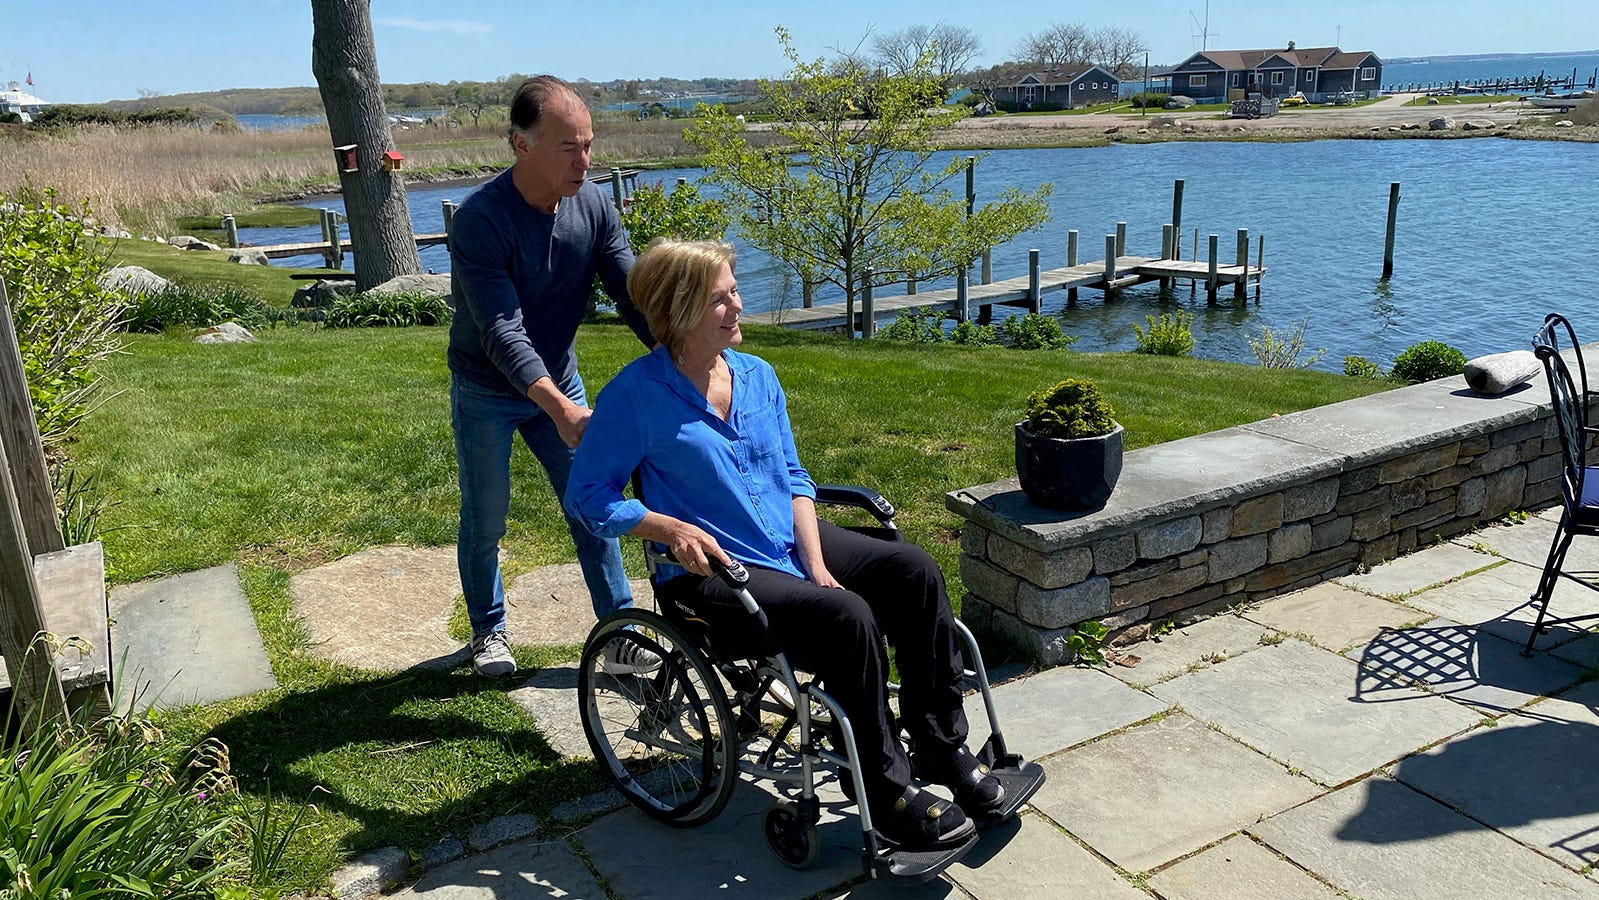 RI woman with ALS fights to speed availability of experimental drugs